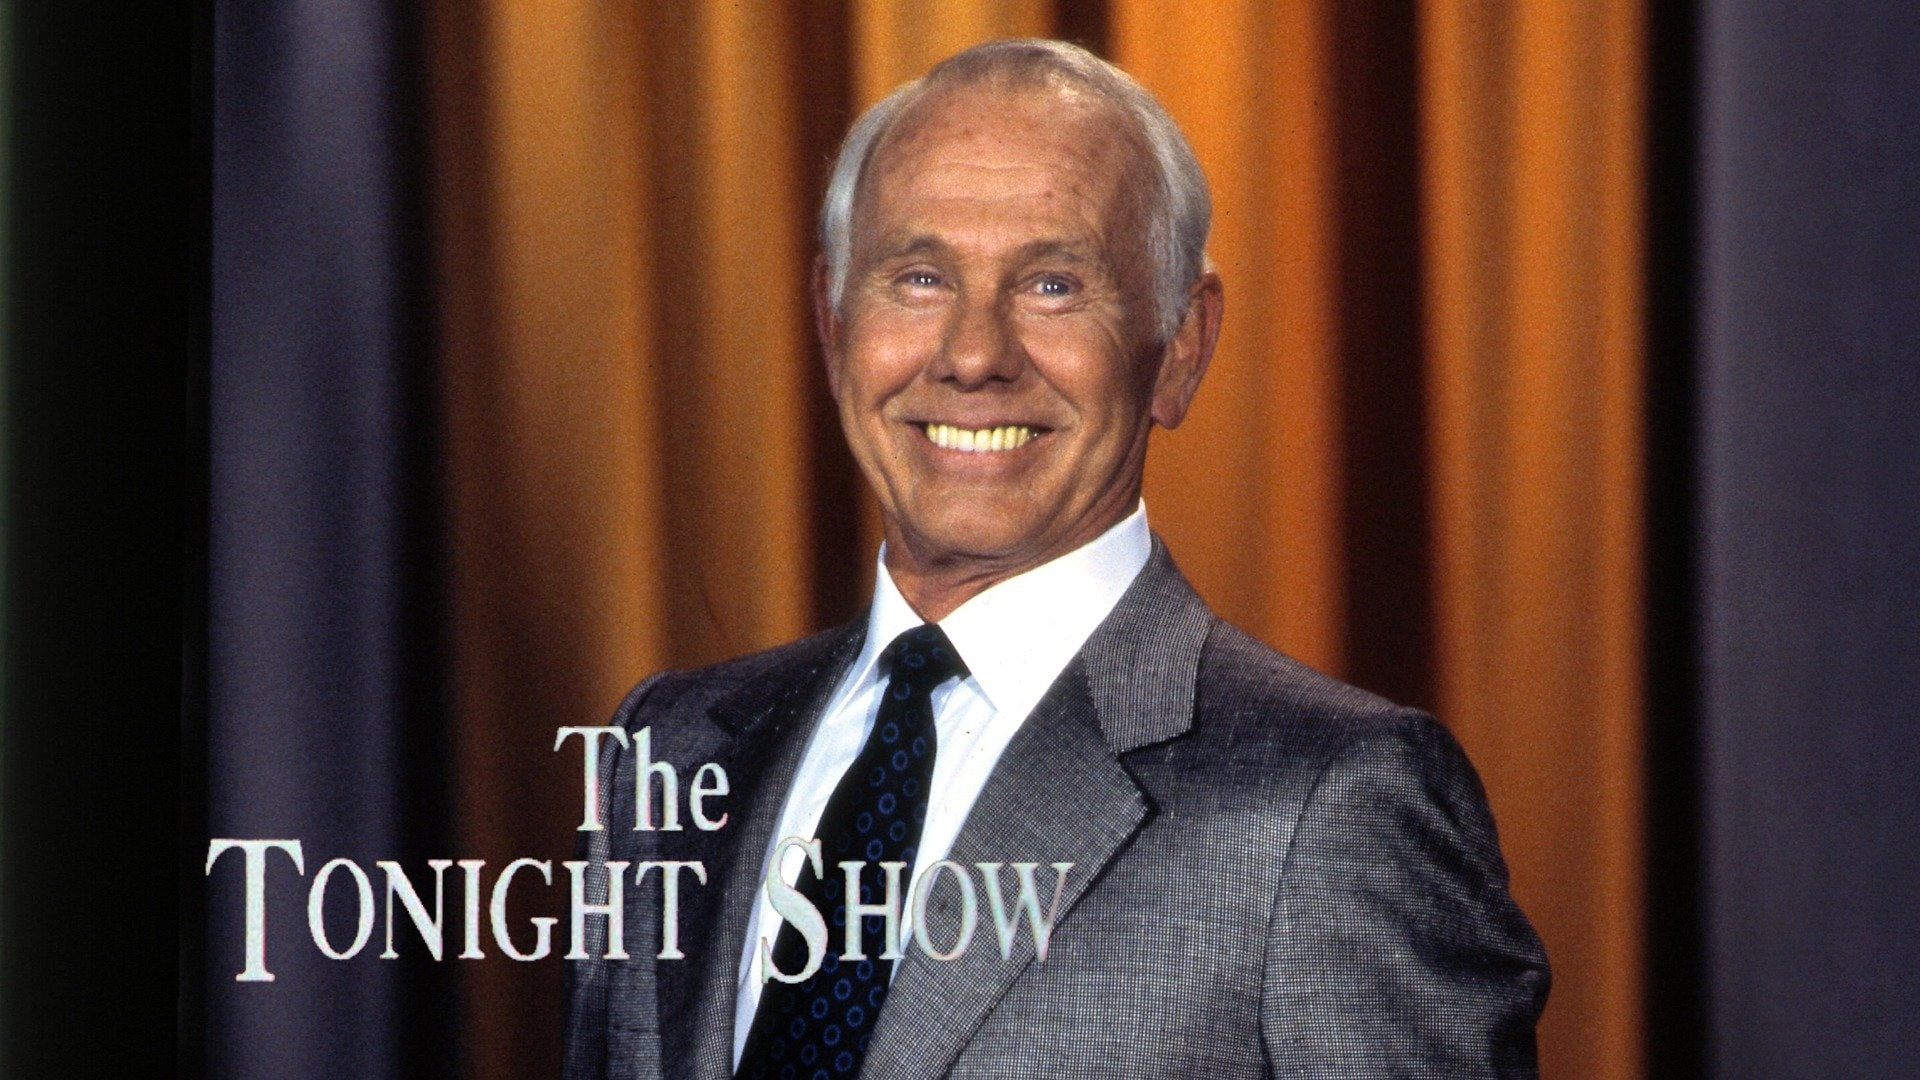 The Johnny Carson Show: Comic Legends Of The '60s - Bob Newhart (5/18/83)